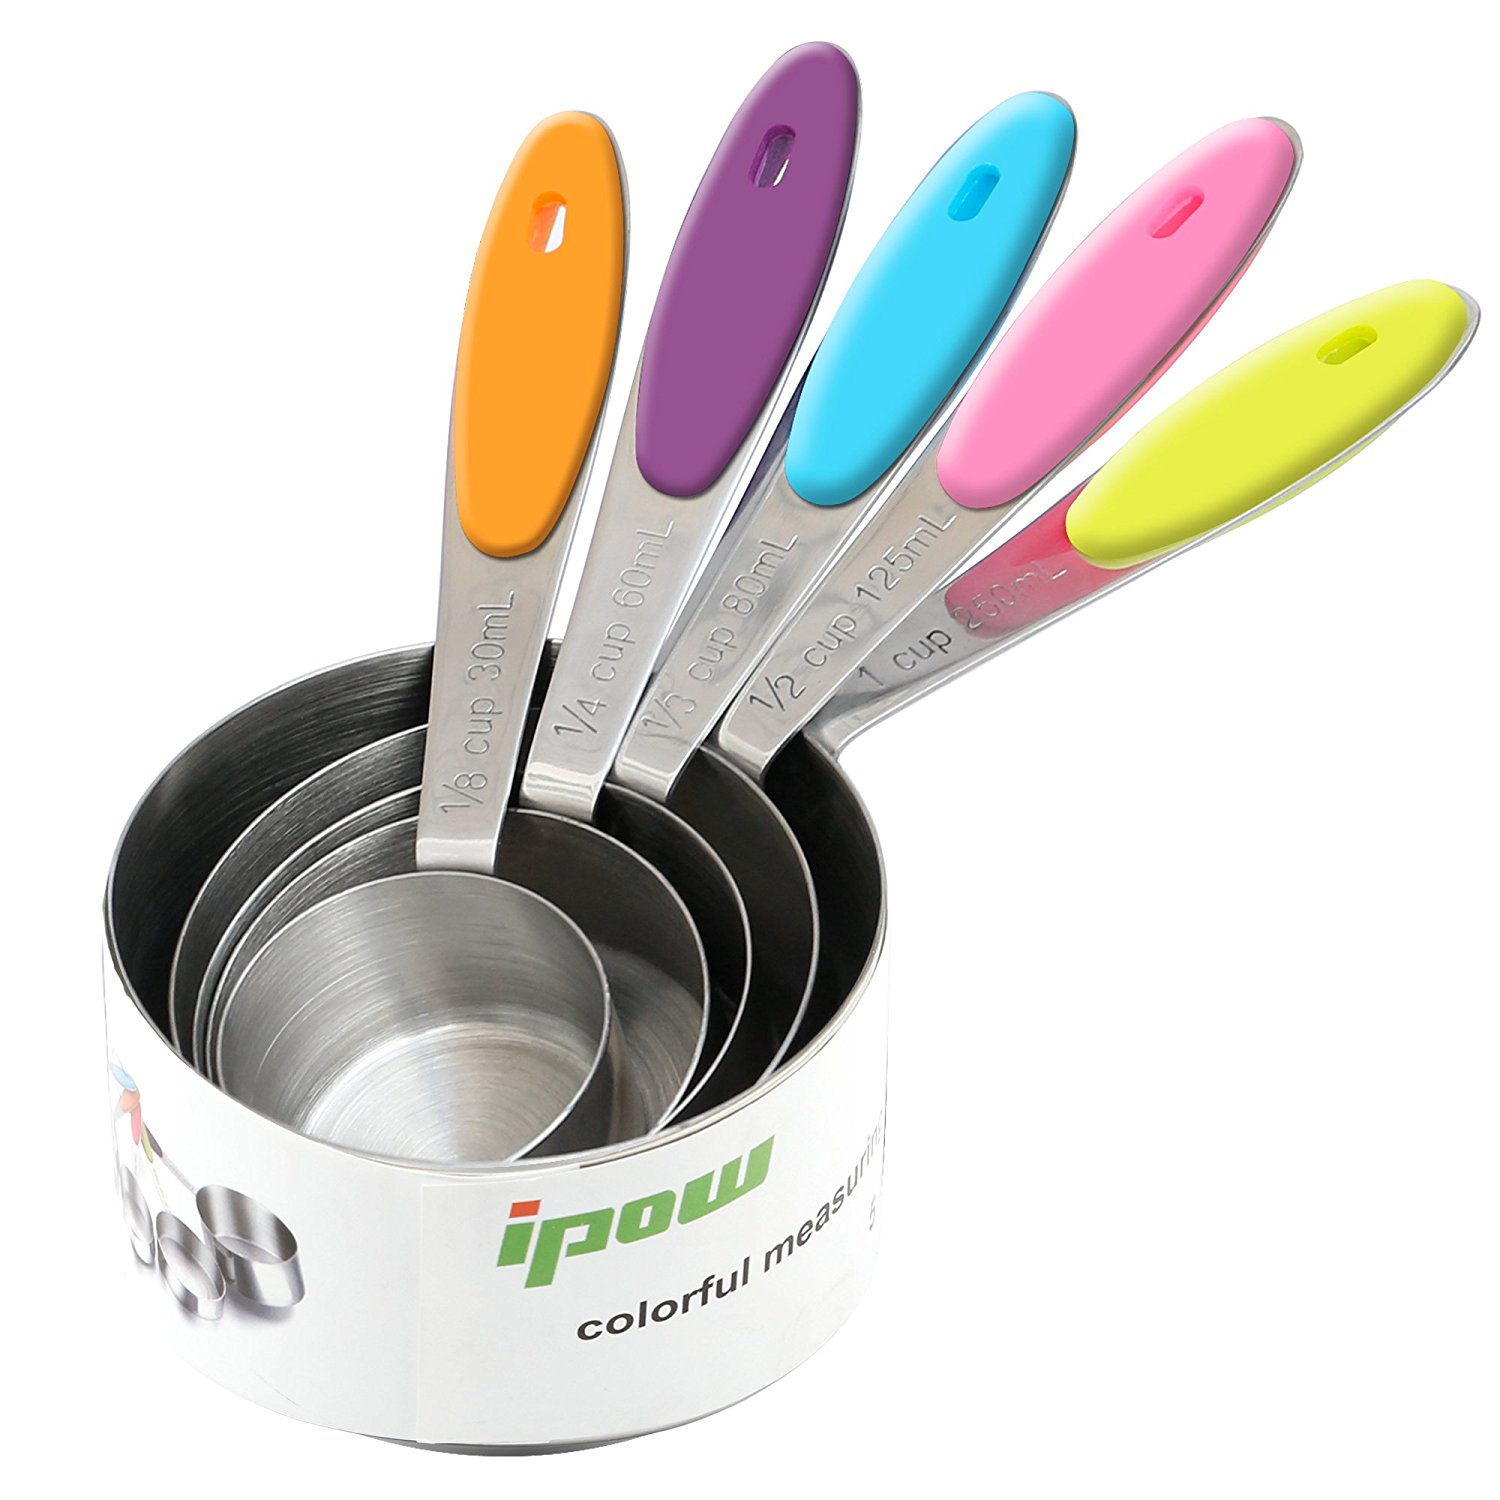 IPOW Stainless Steel Liquid & Dry Measure Cup Stackable Measuring Cup Set - Home Kitchen Gadget, Tool & Utensils for Cooking & Baking, Set of 5 (1/8, 1/4, 1/3, 1/2, 1 Cup)